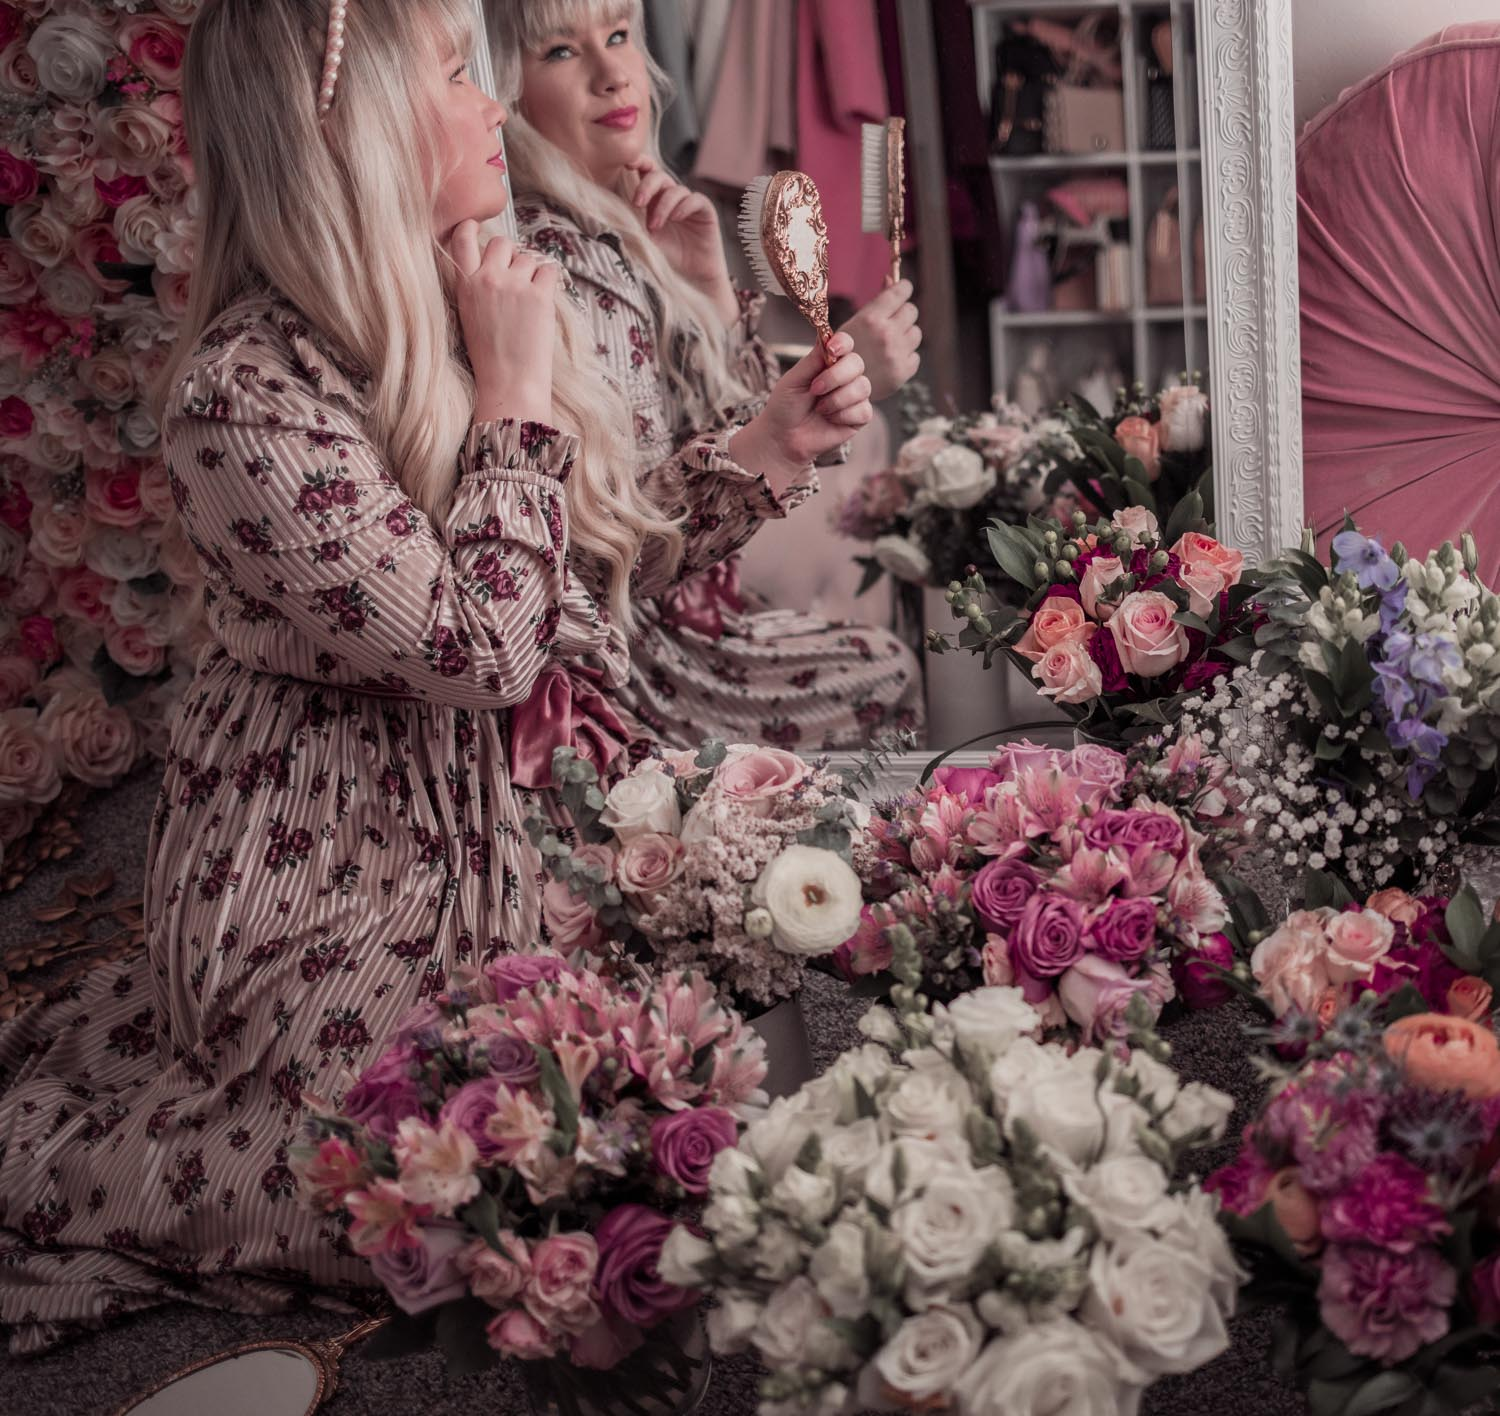 Feminine Fashion Blogger Elizabeth Hugen of Lizzie in Lace wears a floral Sister Jane dress and shares her gorgeous feminine home decor including spring flowers from Urban Stems